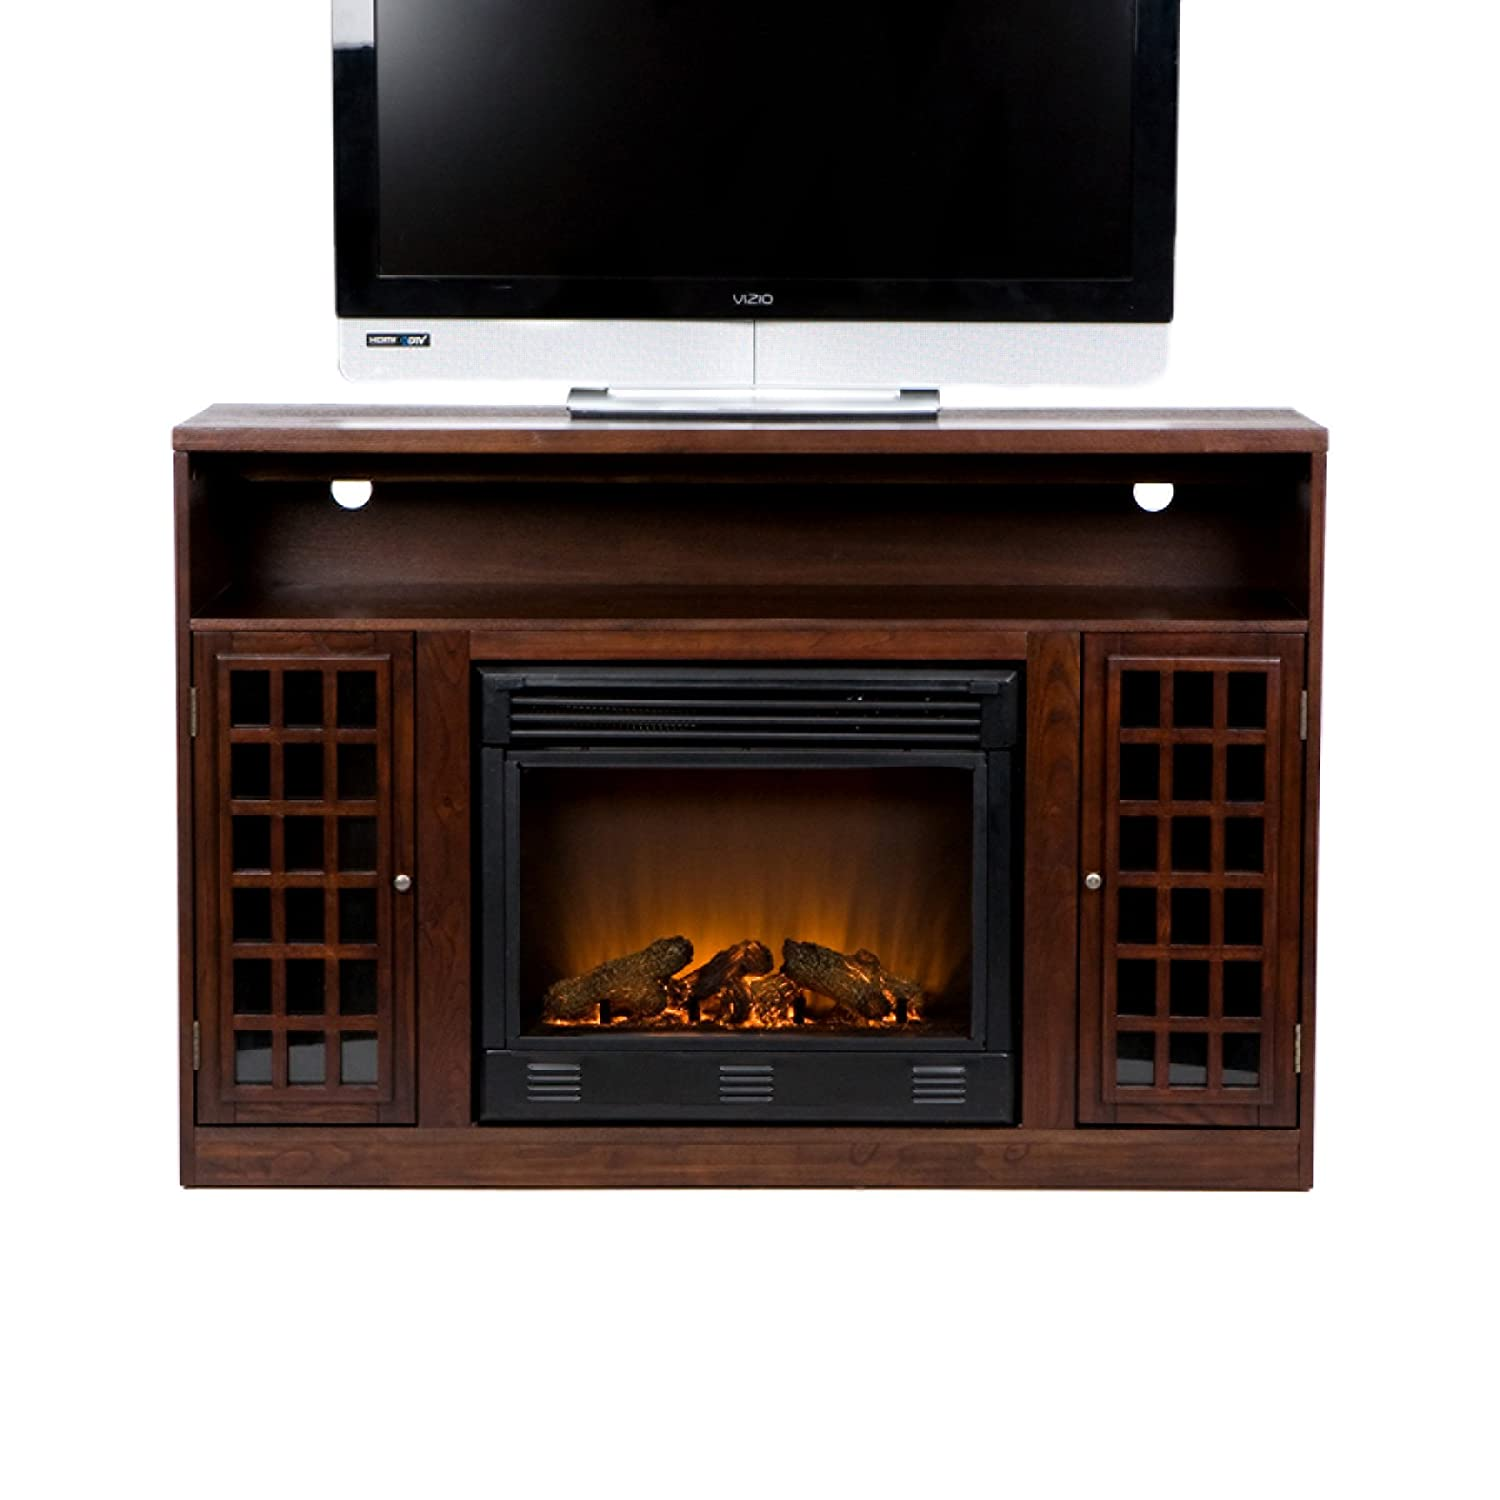 Amazon.com: Narita Media Electric Fireplace - Espresso: Kitchen ...